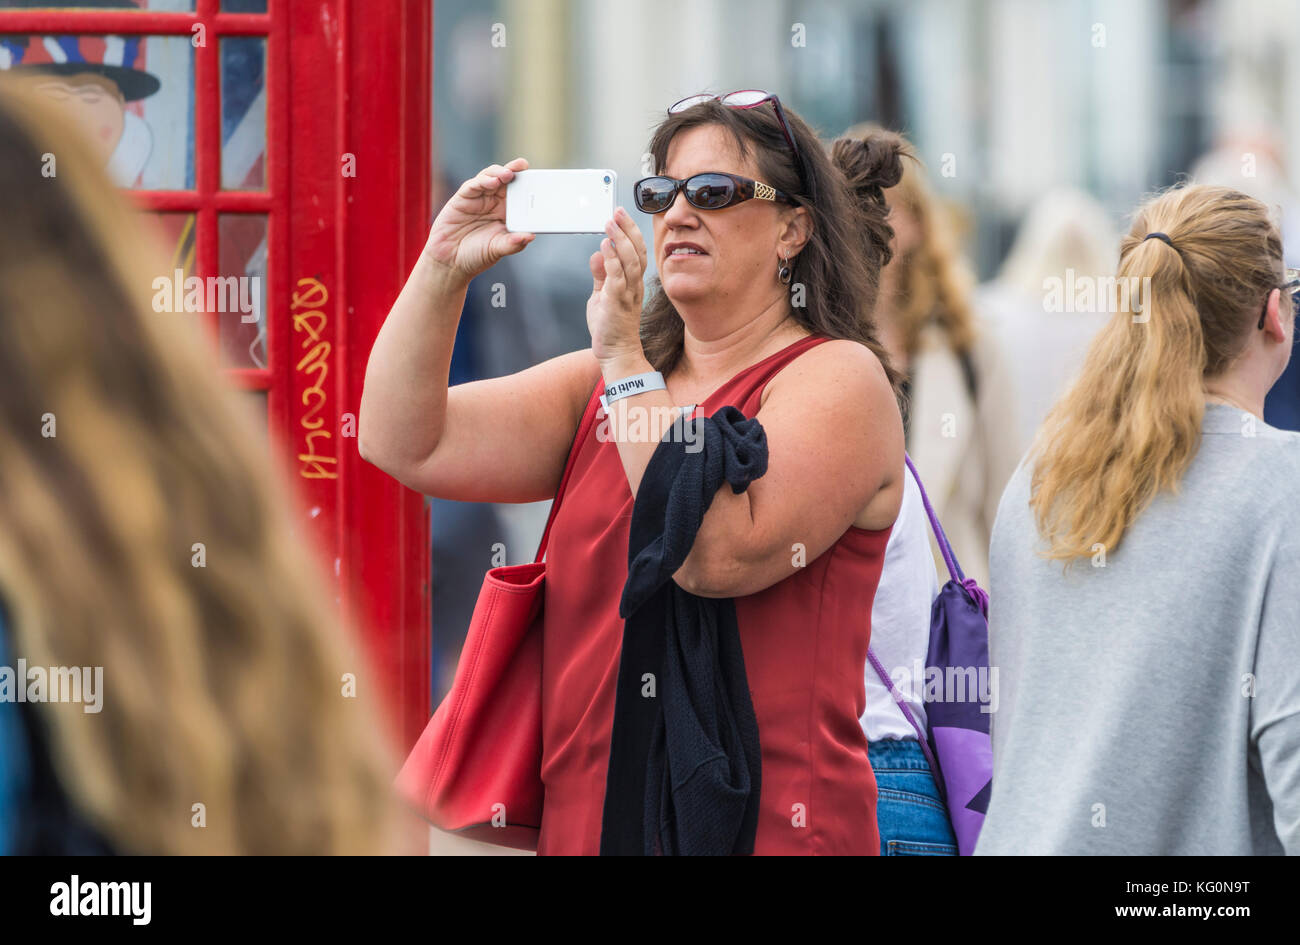 White female tourist taking photos using a smartphone camera in a crowded area in the UK. - Stock Image